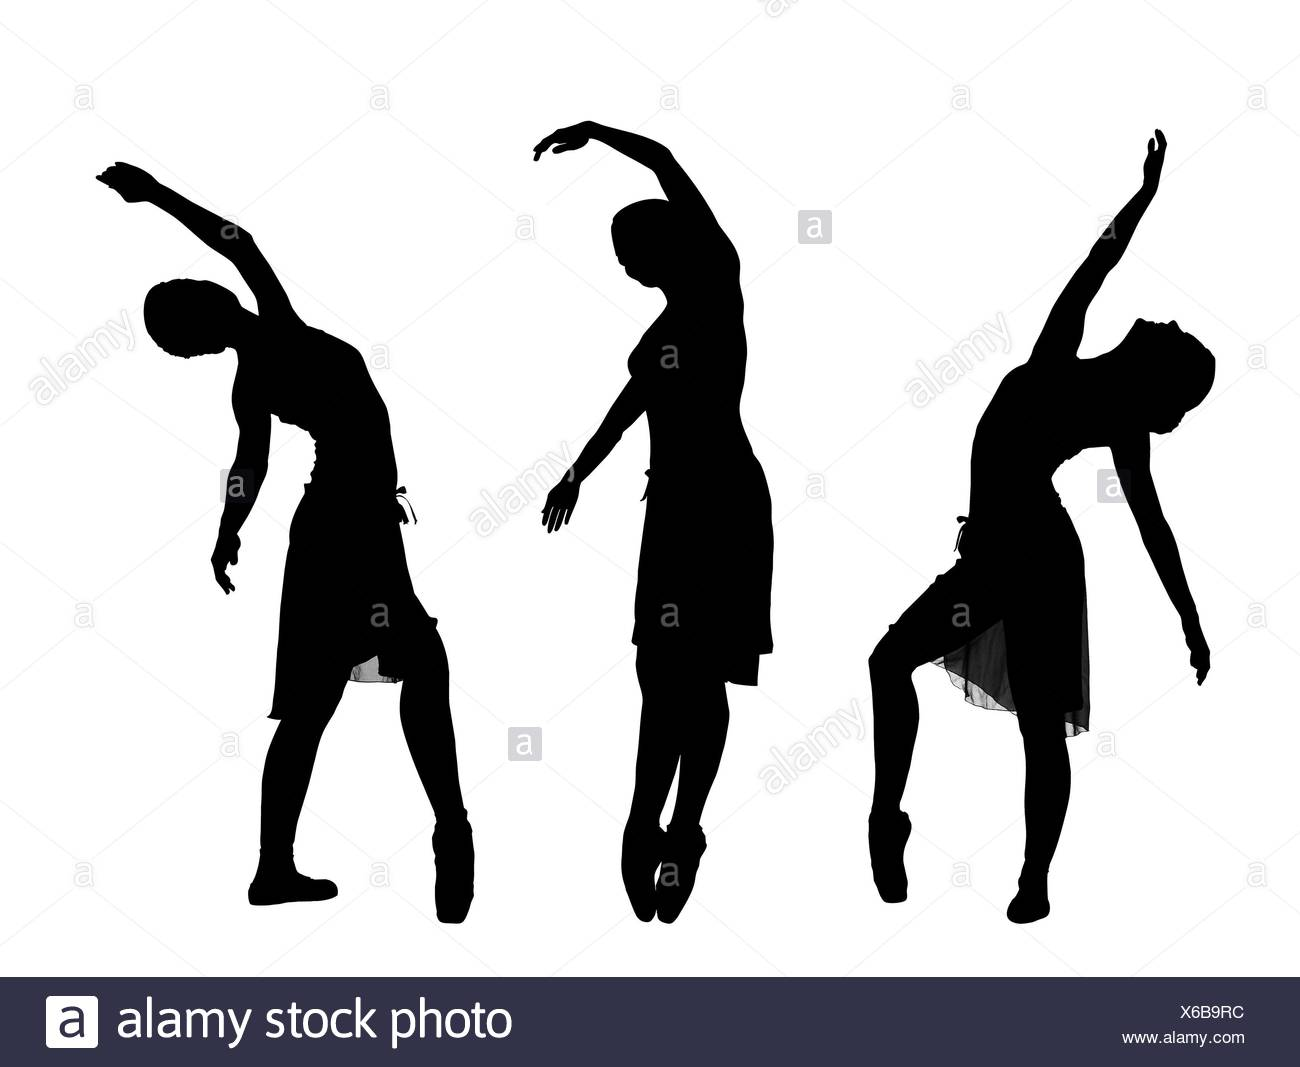 silhouette,ballet dancer - Stock Image